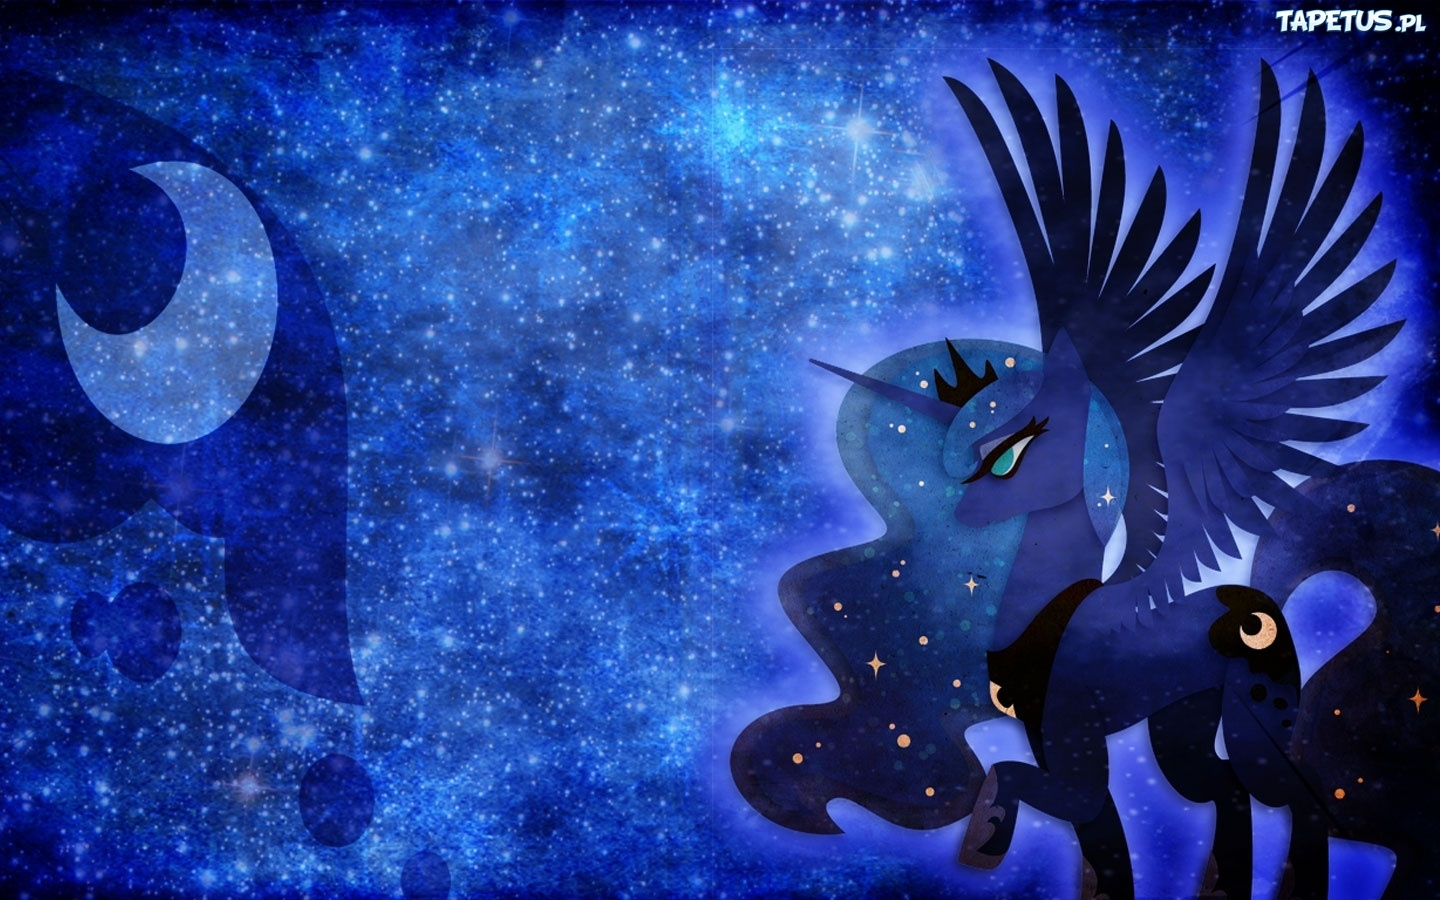 Tapeta My Little Pony  Przyja     To Magia  Luna